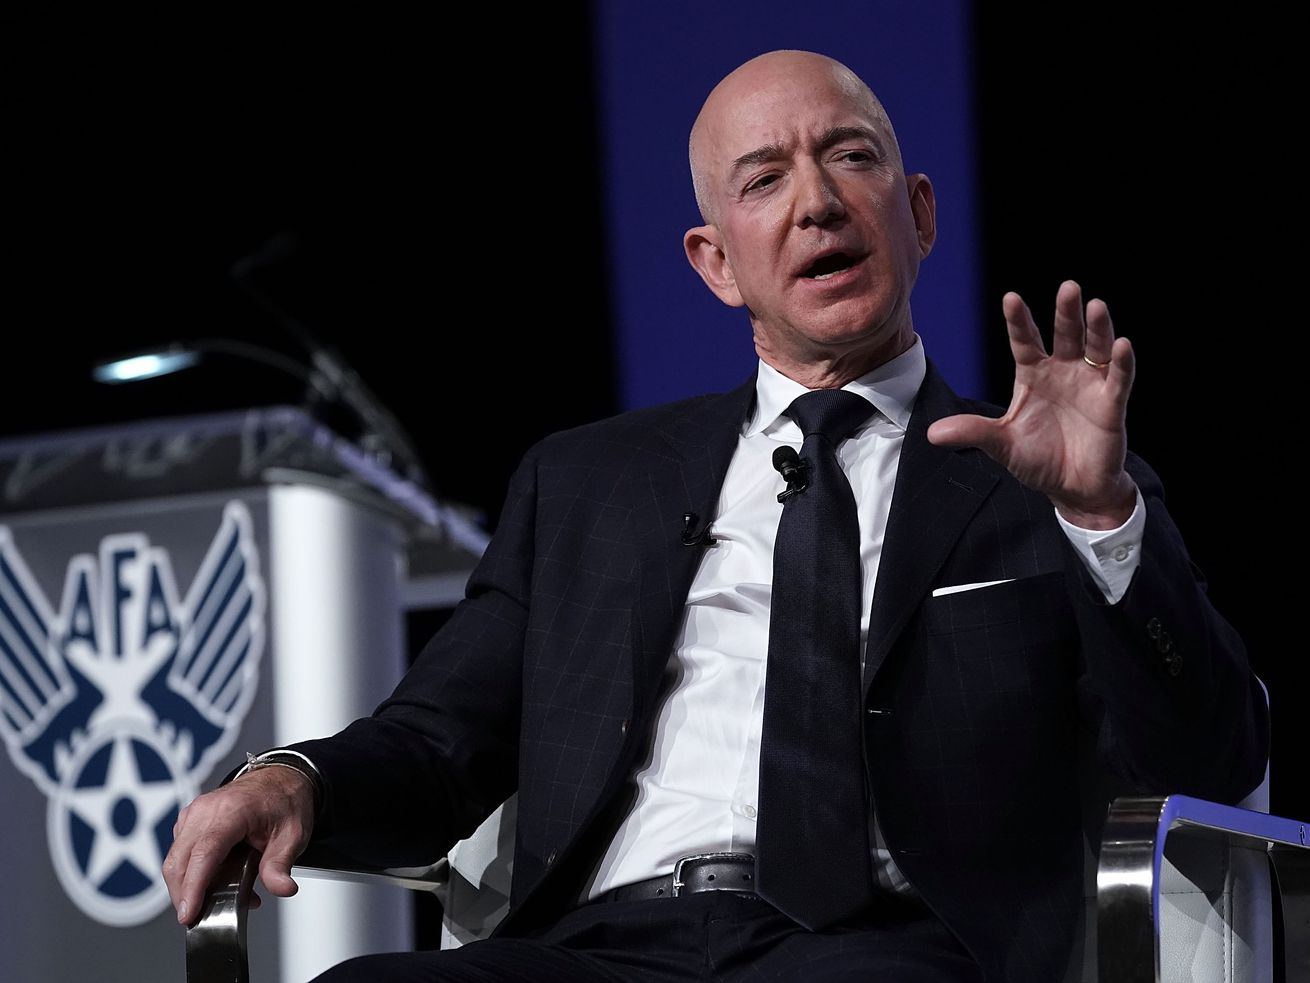 Amazon CEO Jeff Bezos participates in an event hosted by the Air Force Association on September 19, 2018, in National Harbor, Maryland.